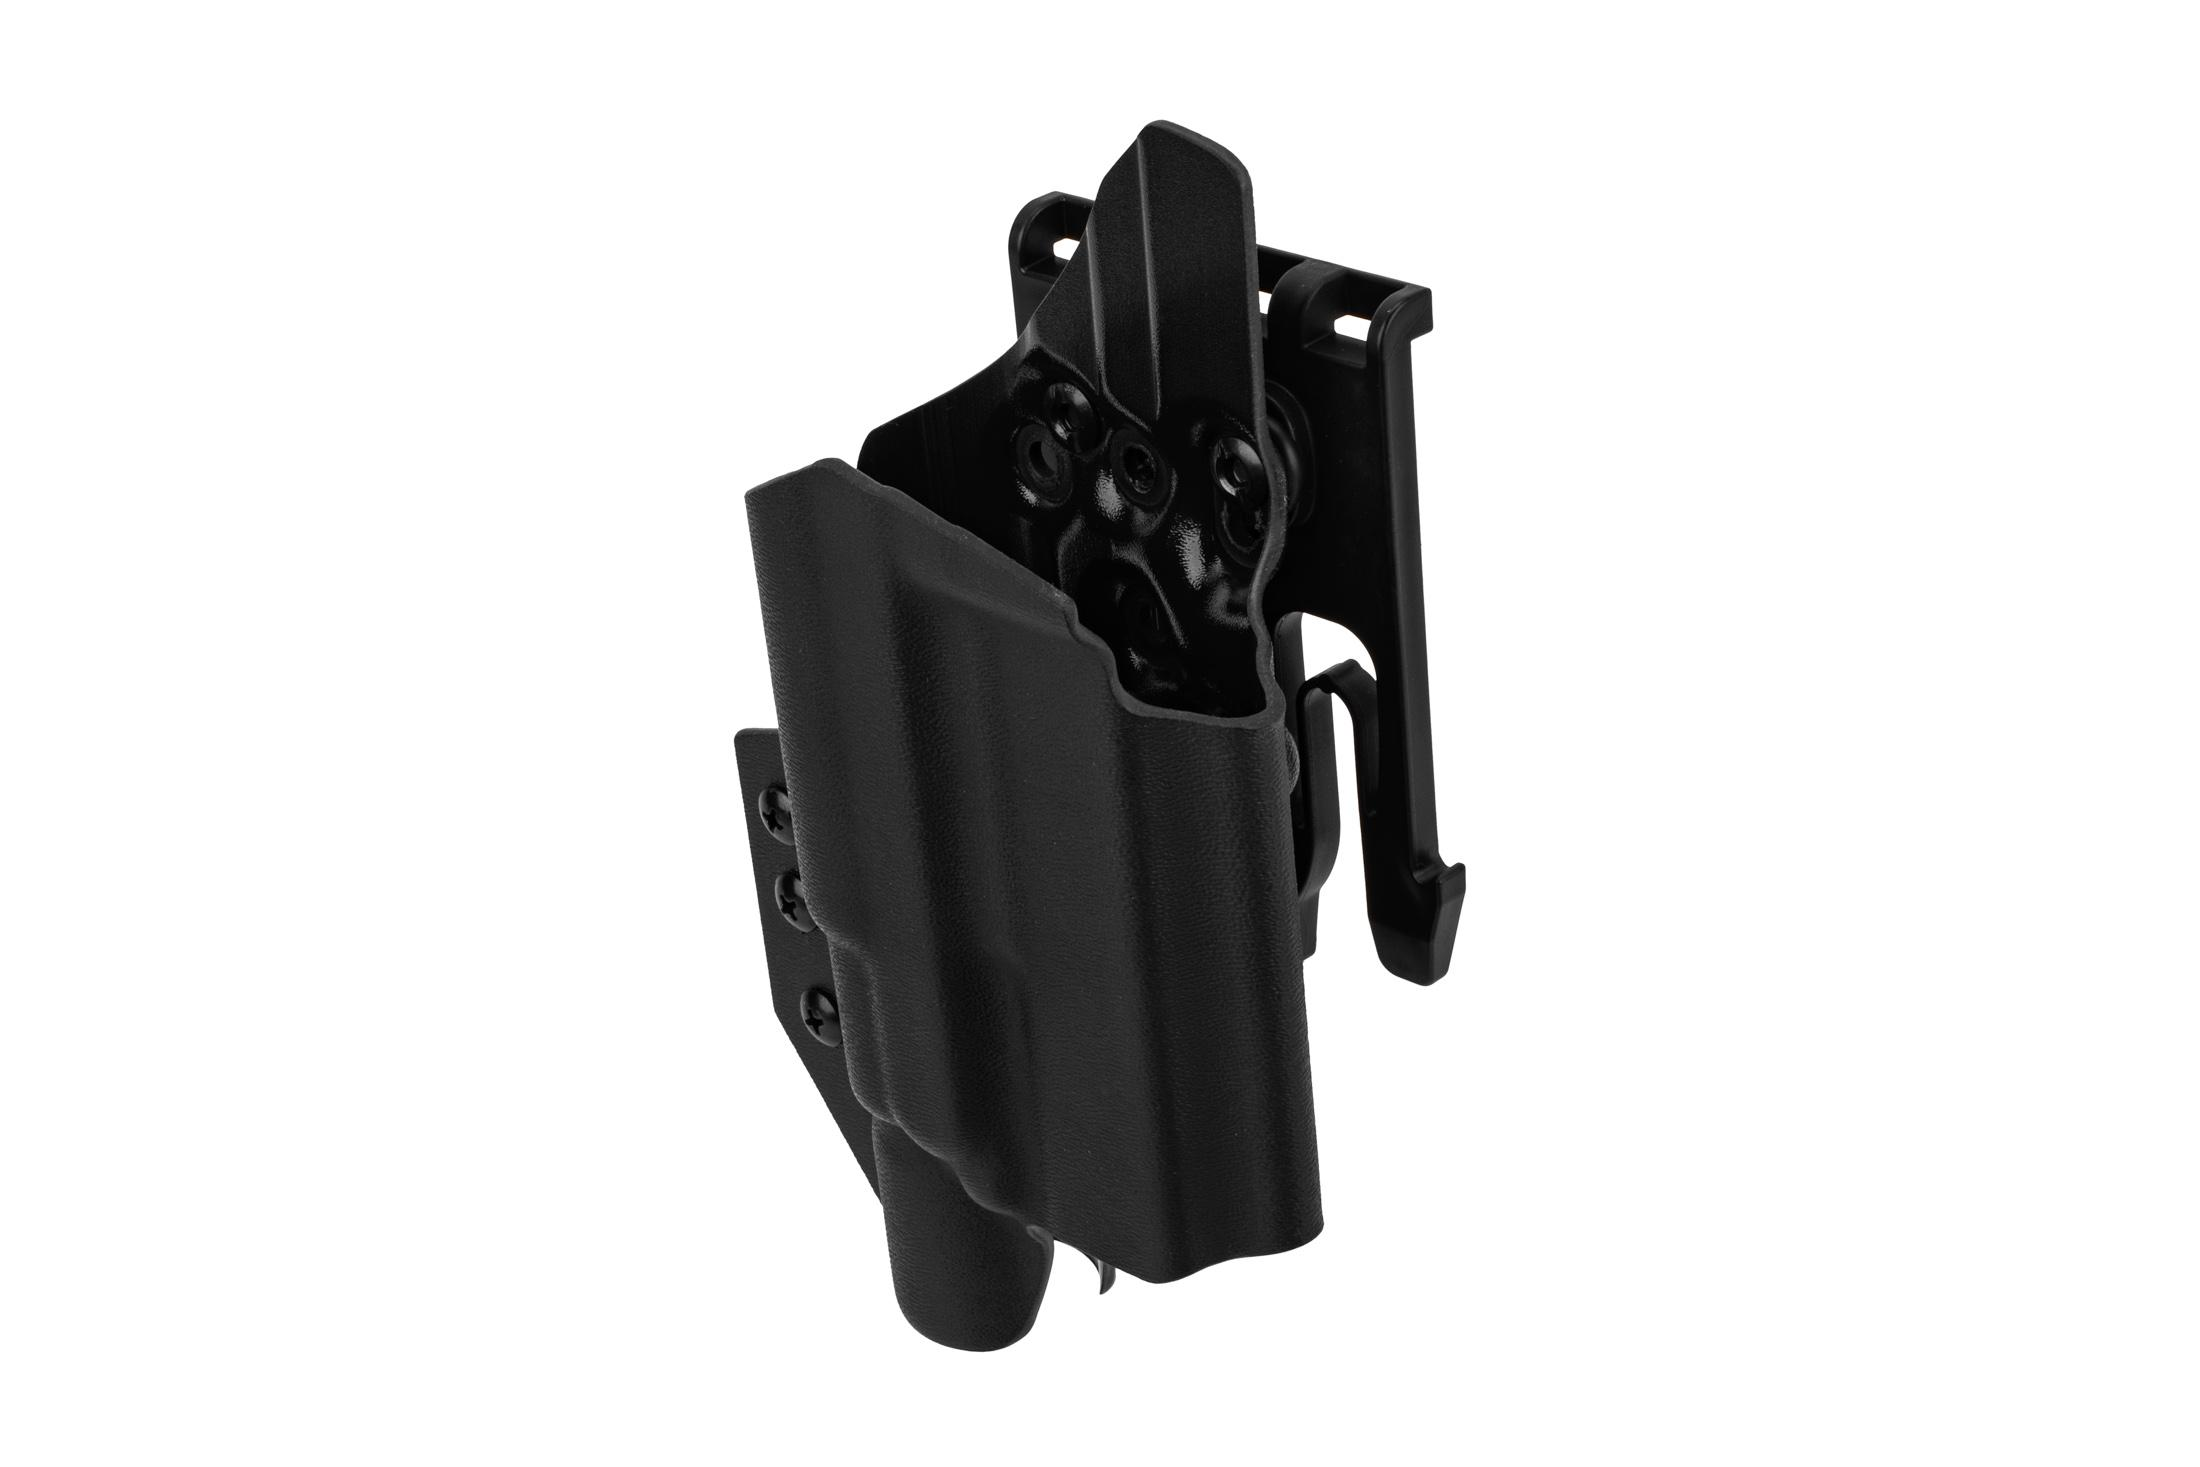 ANR Design Nidhogg Glock 19 light bearing OWB holster is compatible with X300U weapon lights